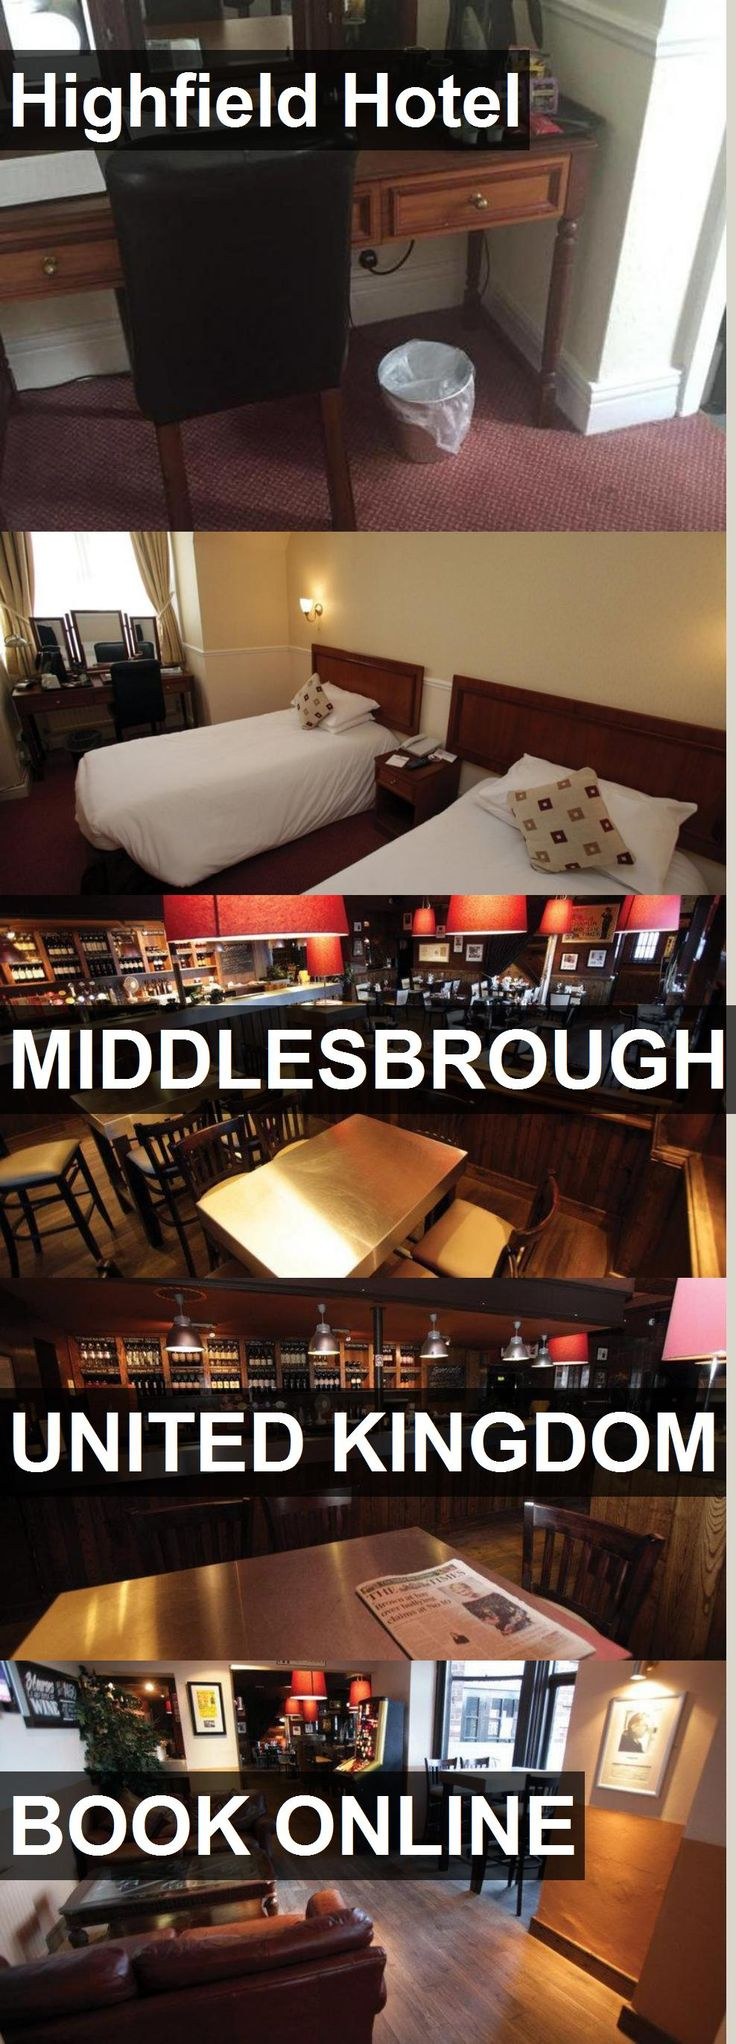 Highfield Hotel in Middlesbrough, United Kingdom. For more information, photos, reviews and best prices please follow the link. #UnitedKingdom #Middlesbrough #travel #vacation #hotel